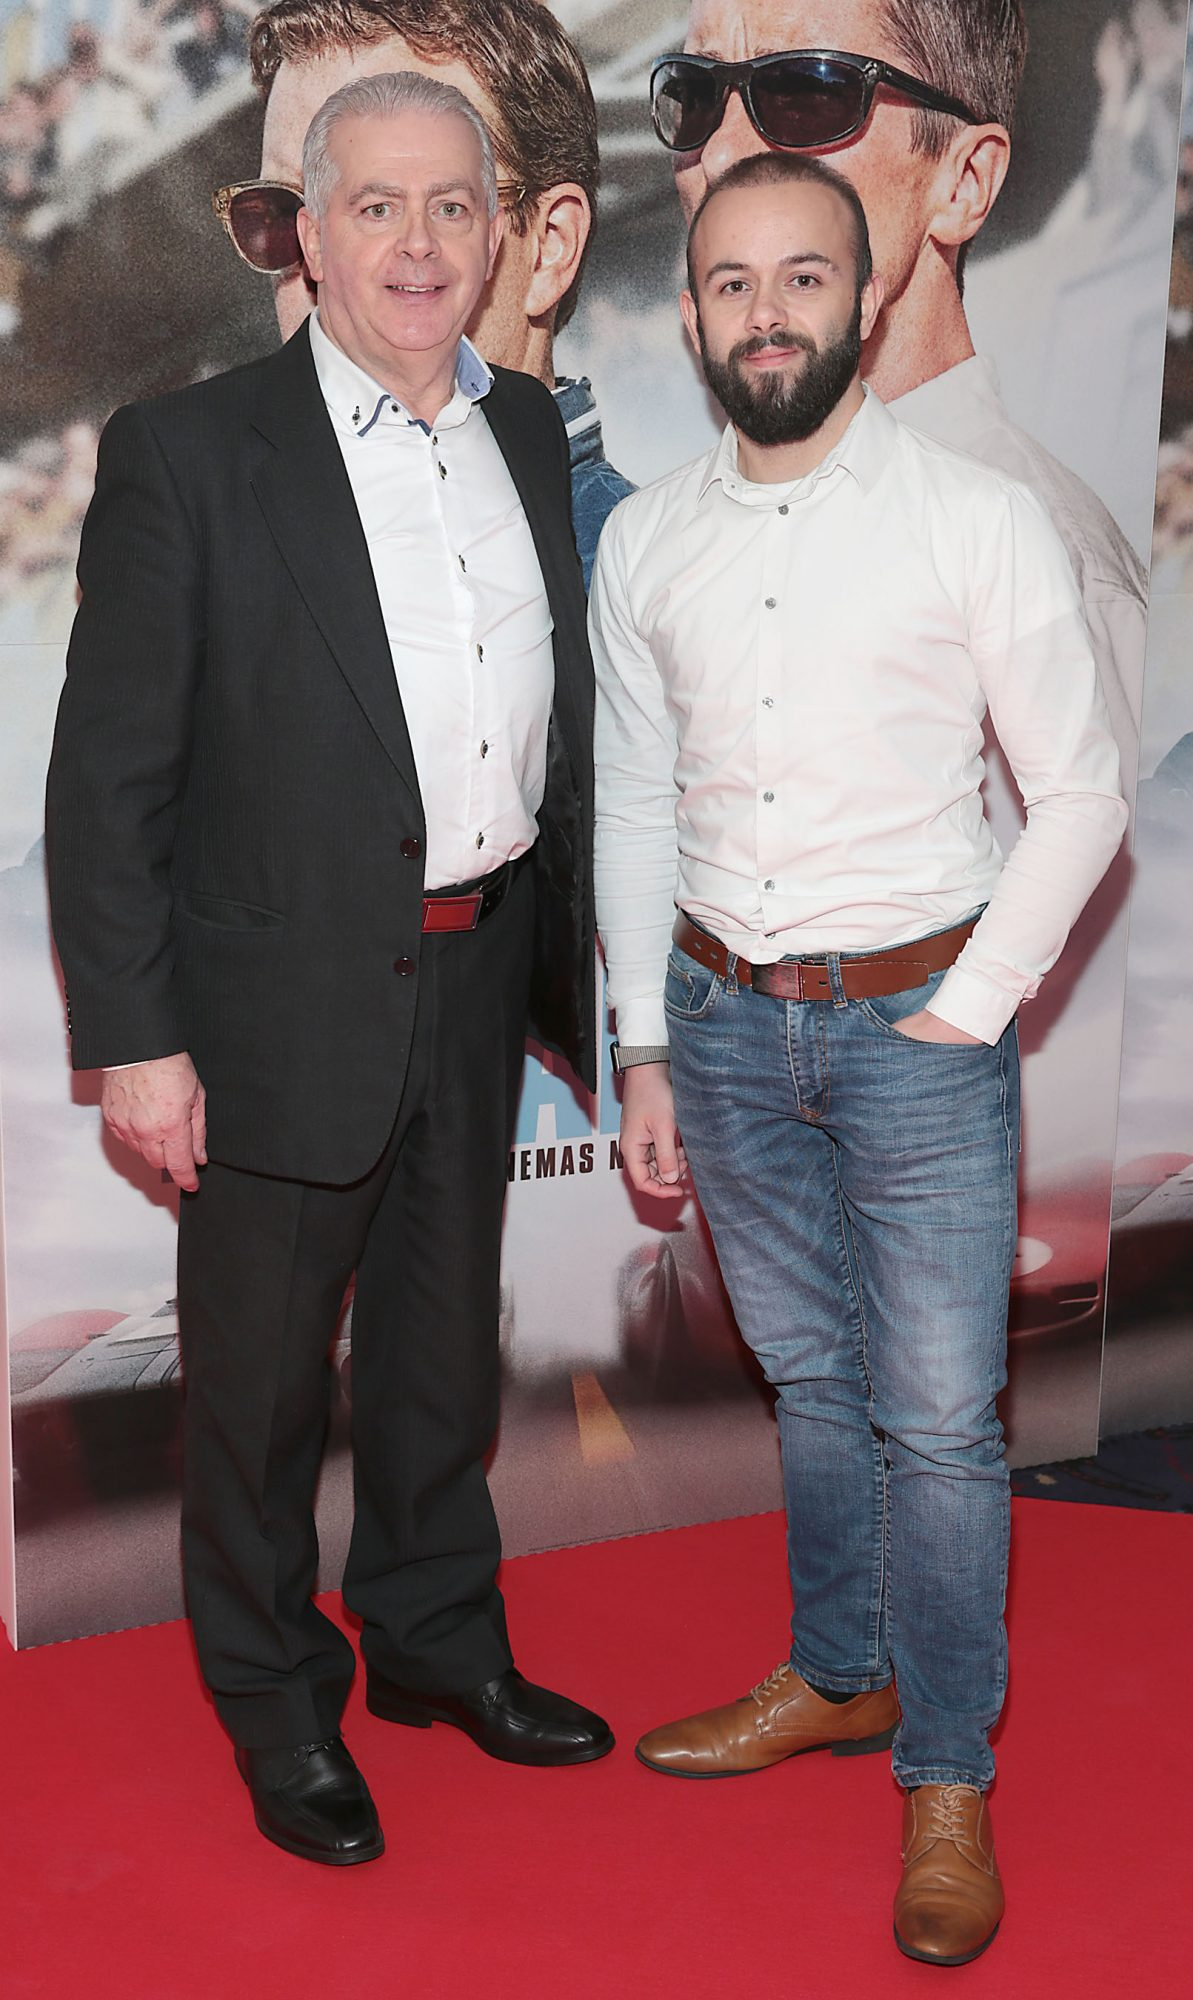 Gerry Eiffe and Ross Eiffe pictured at the special preview screening of Le Mans '66 at Cineworld, Dublin. Photo: Brian McEvoy.